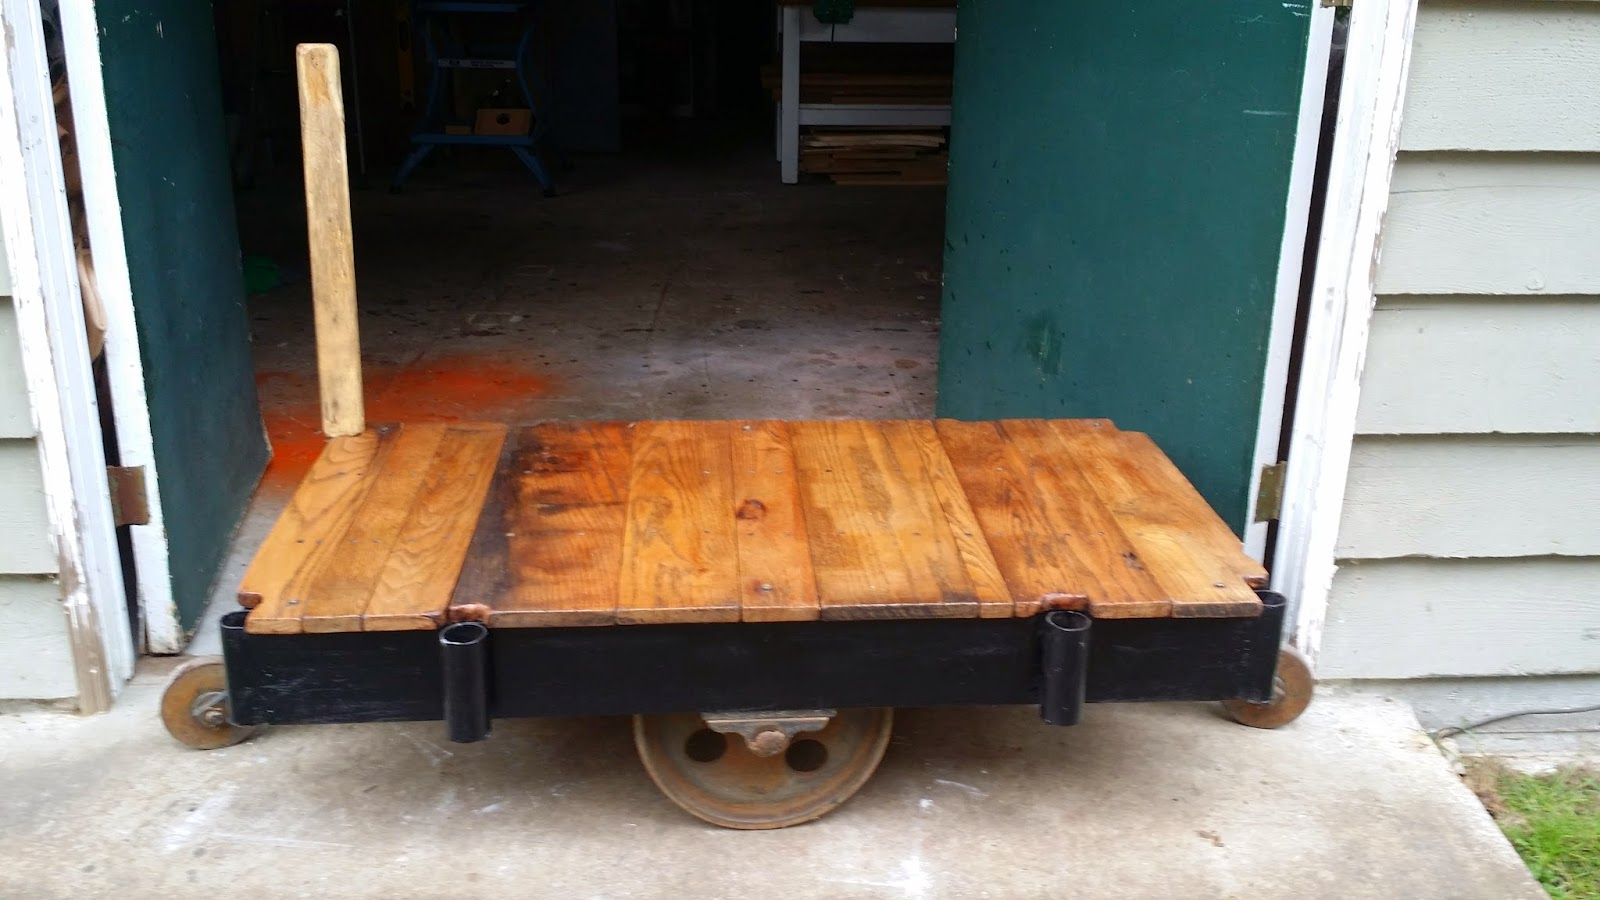 Industrial factory cart reconditioned for 100 year old oak table